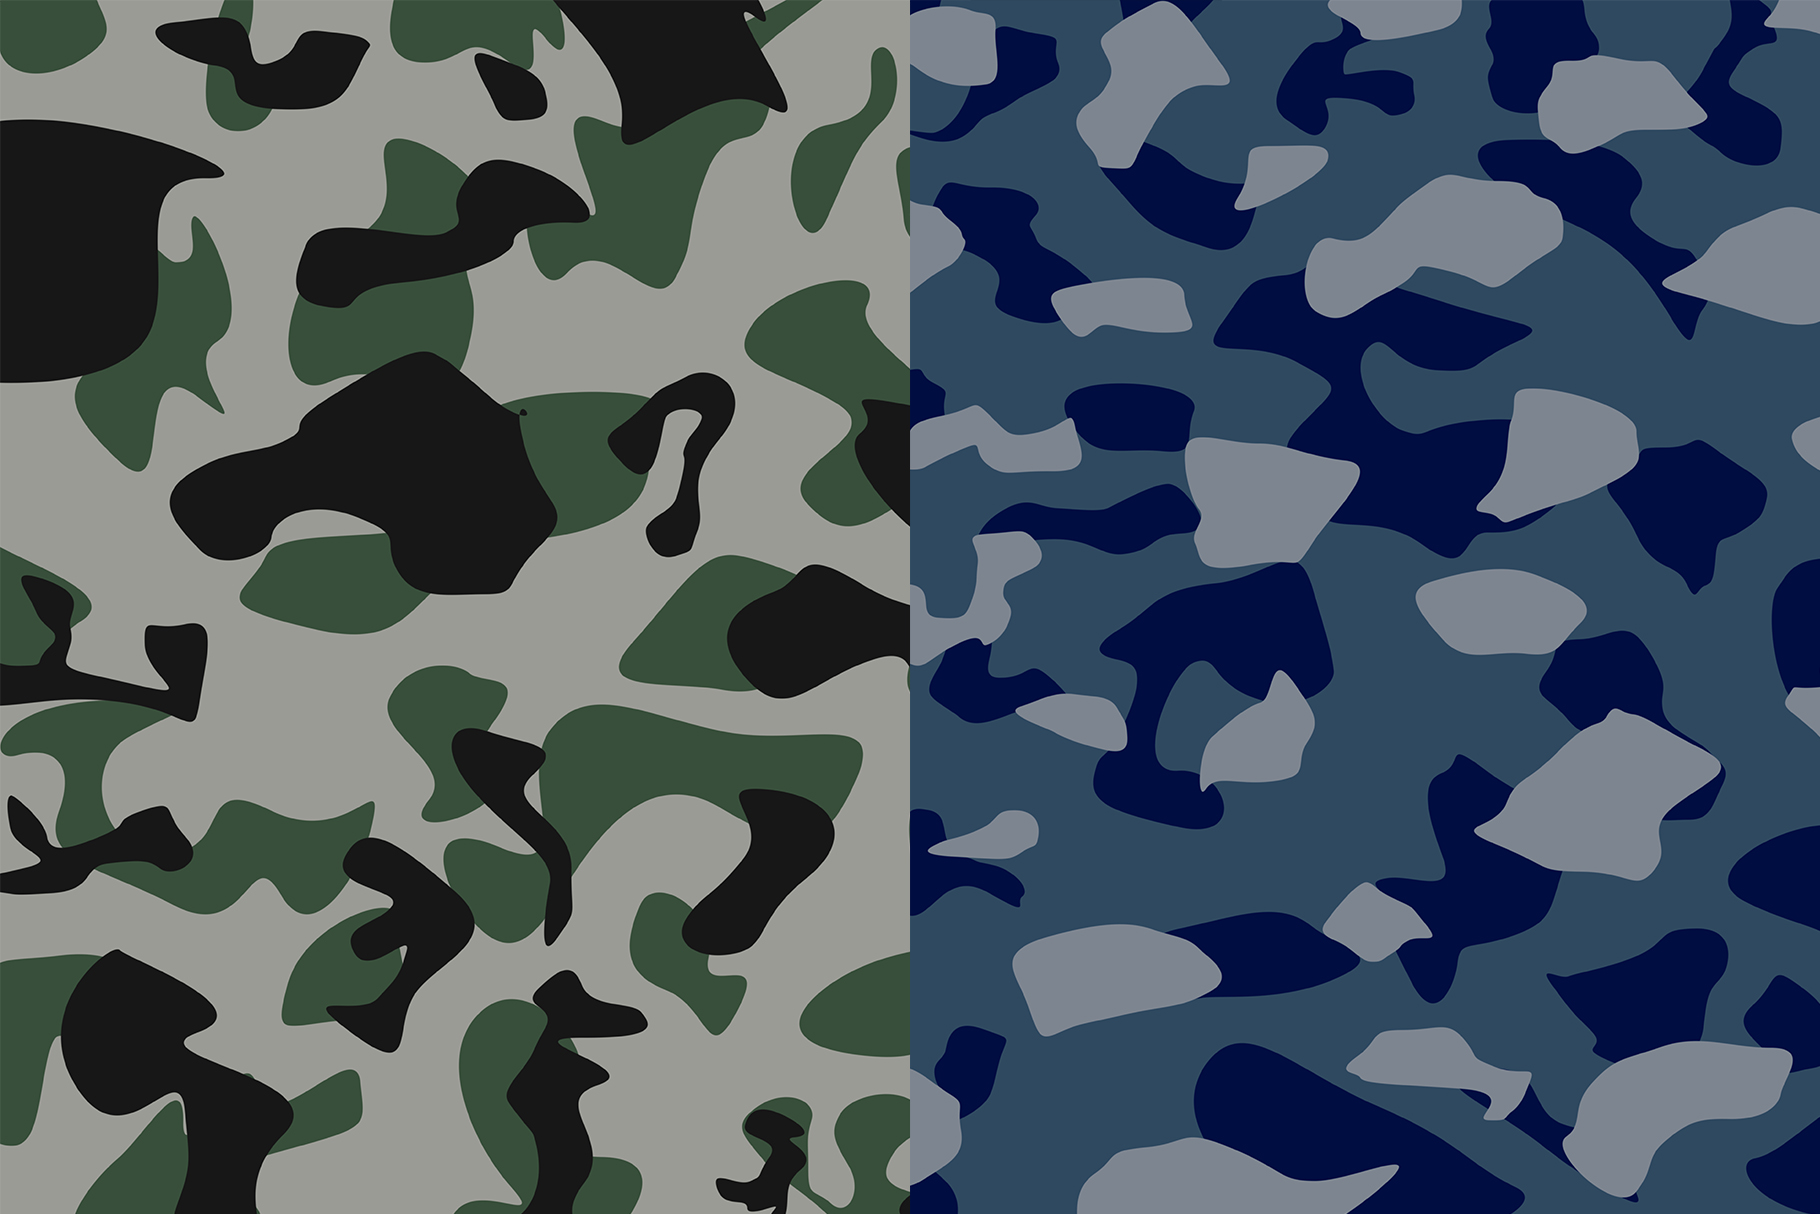 10 Army Camo Patterns Vol.2 example image 4